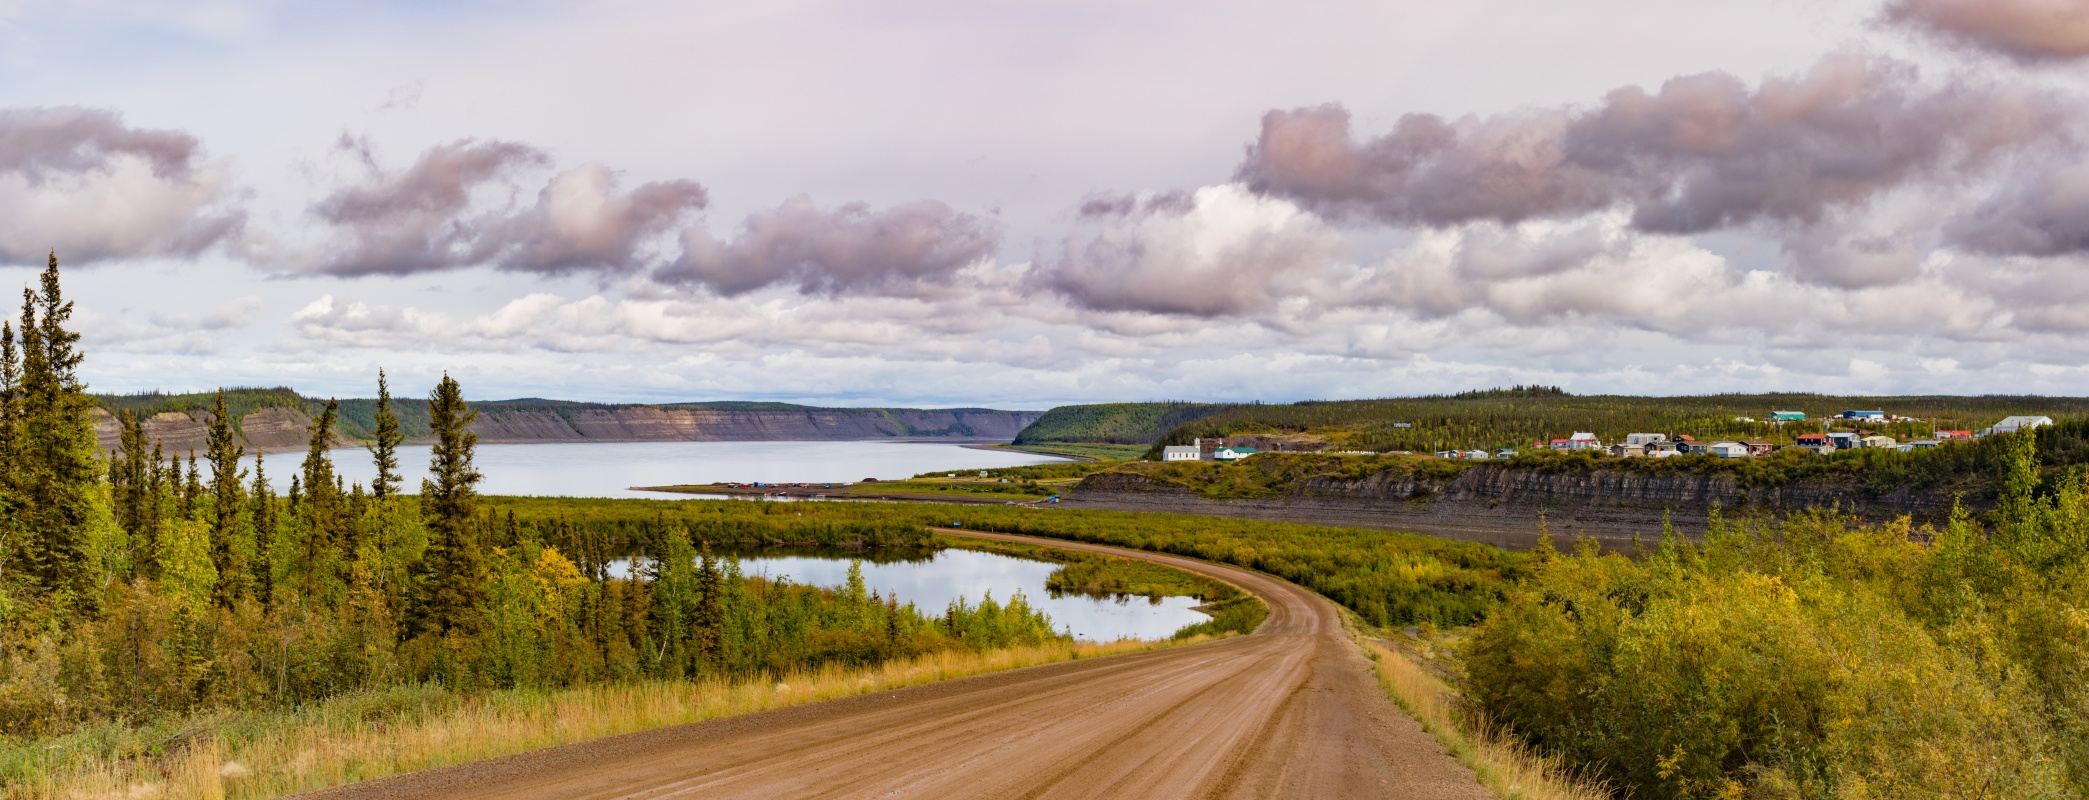 North West Territories arctic landscape of a dirt road, trees and a small lake.